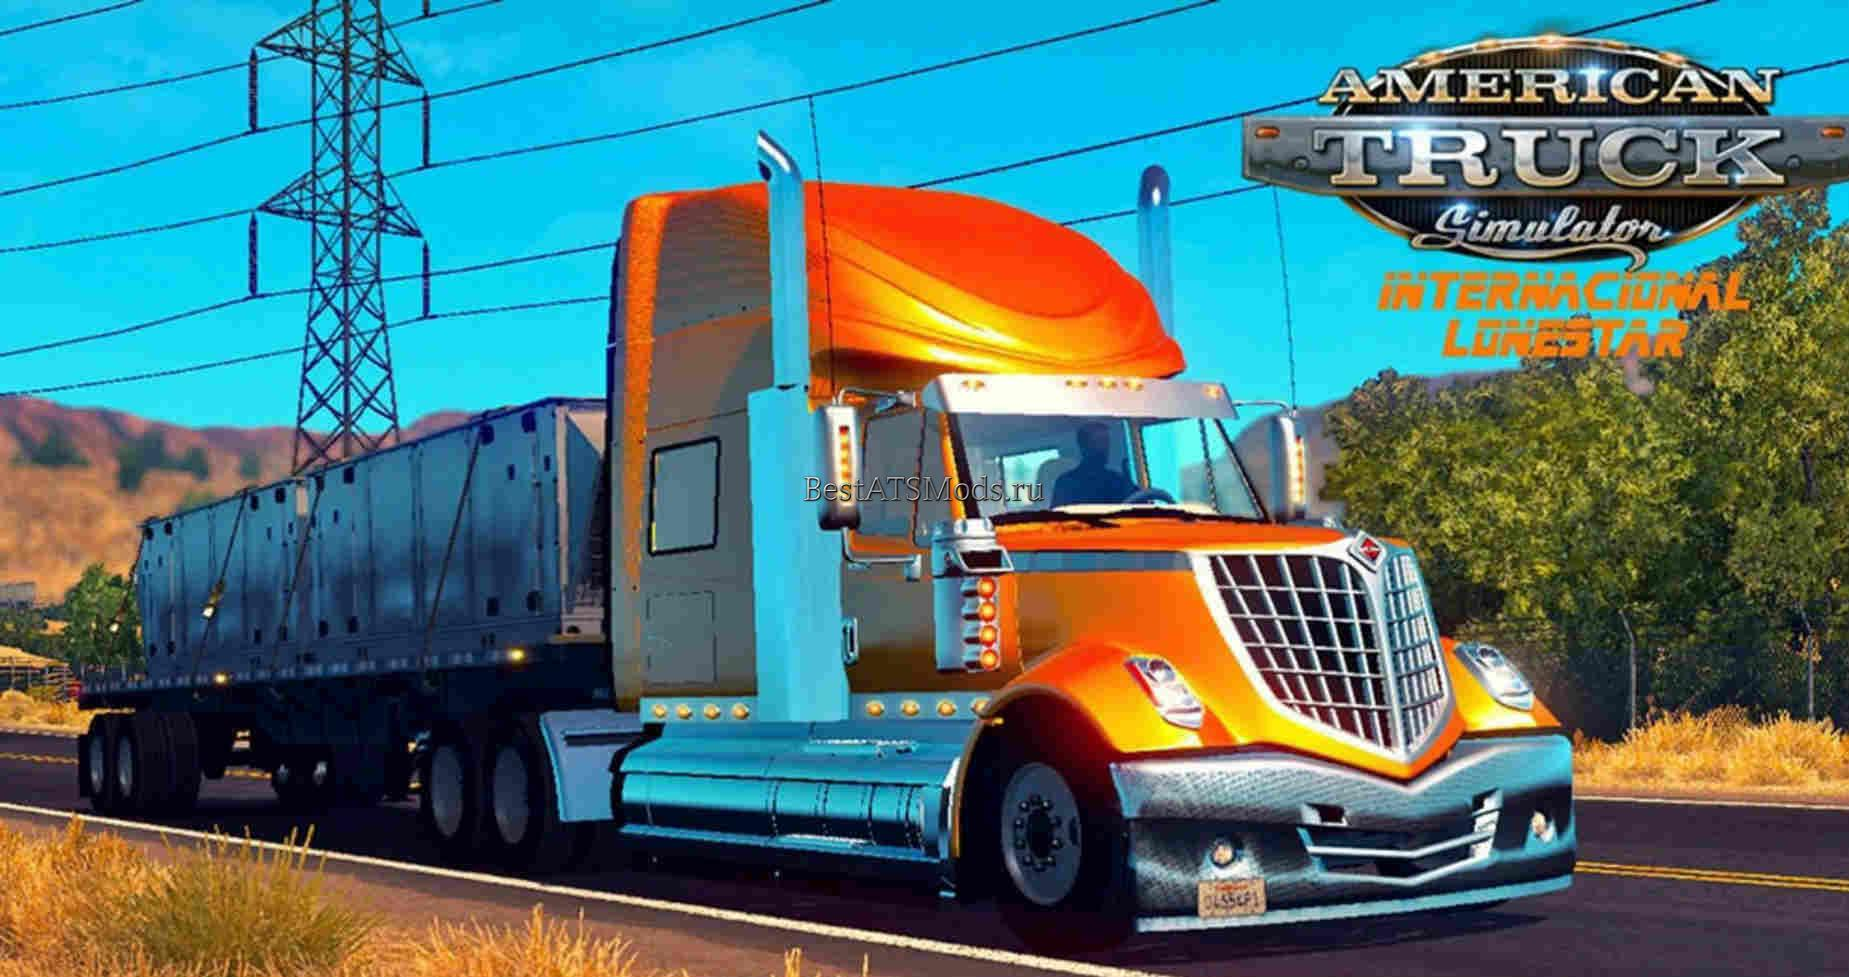 rsz_Мод_грузовик_international_lonestar_truck_american_truck_simulator